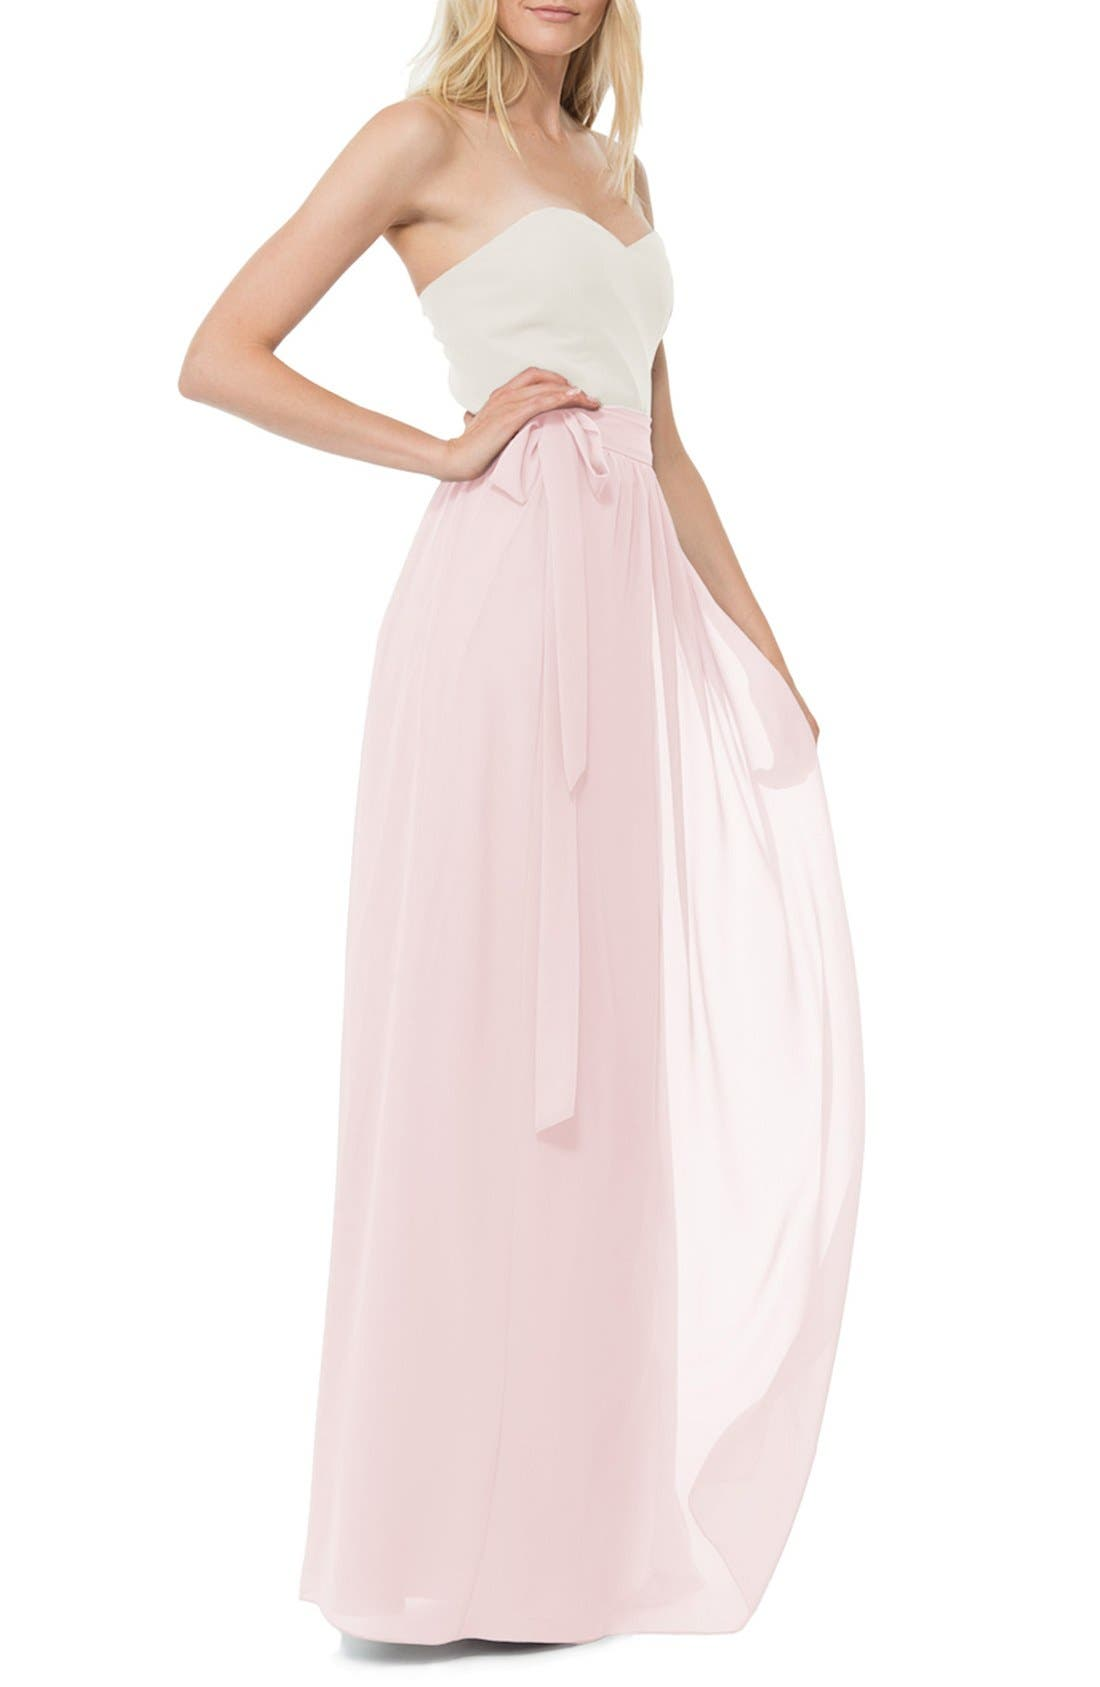 Ceremony by Joanna August 'Whitney' Chiffon Wrap Maxi Skirt